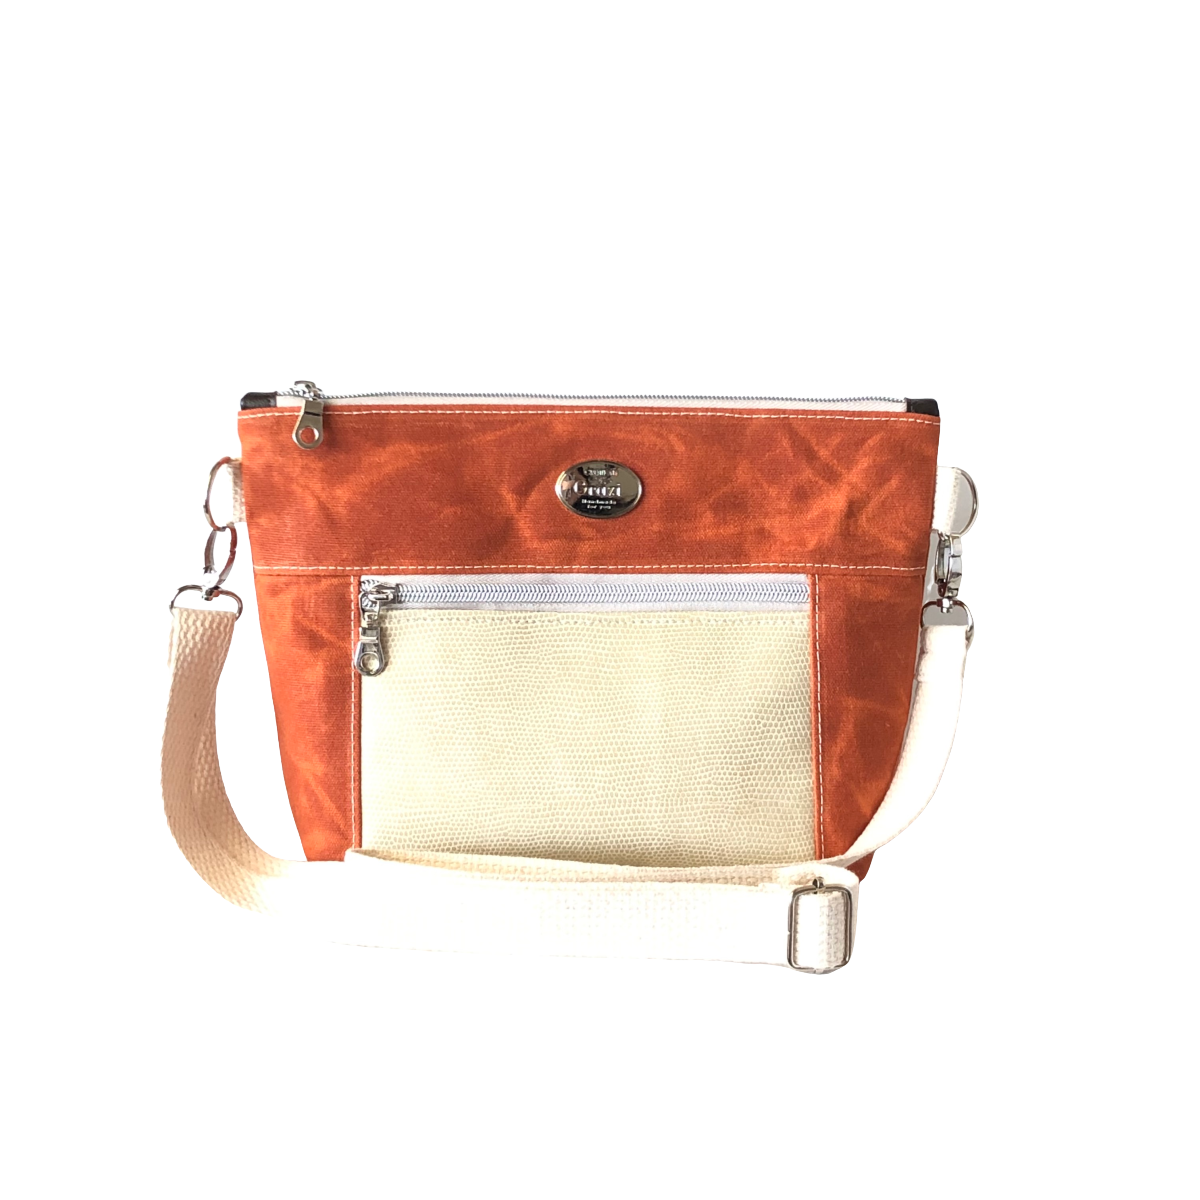 Wax Canvas Faux Leather Crossbody Bag - Burnt Orange/Ivory